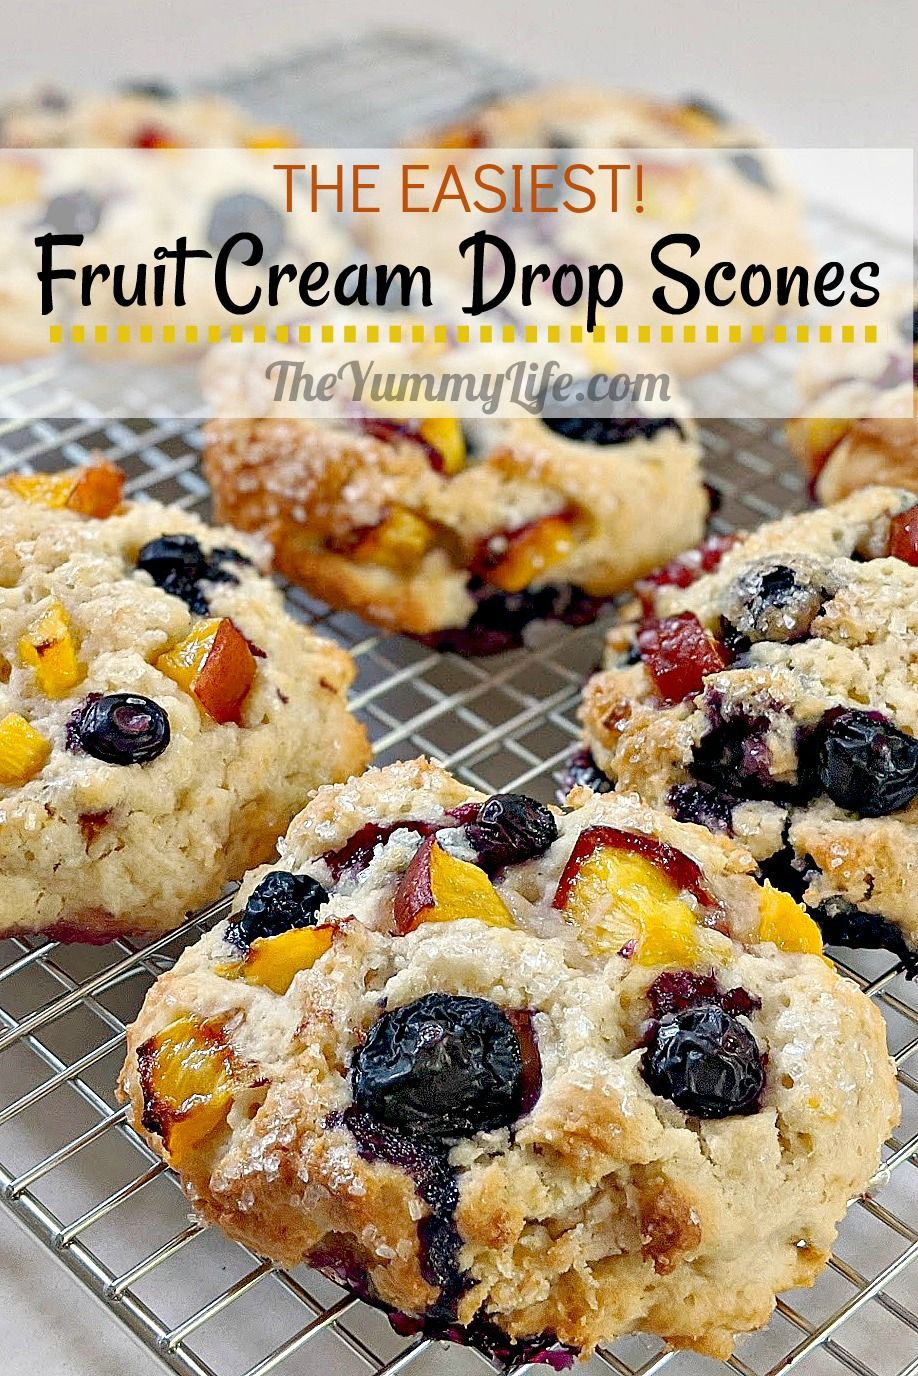 These tender scones are so easy! Mix batter, drop in mounds onto baking sheet, bake, and enjoy. Use fruit of your choice. Make-ahead convenience and freezable. From TheYummyLife.com #scones #creamscones #dropscones #fruitscones #easy #makeahead #freezable